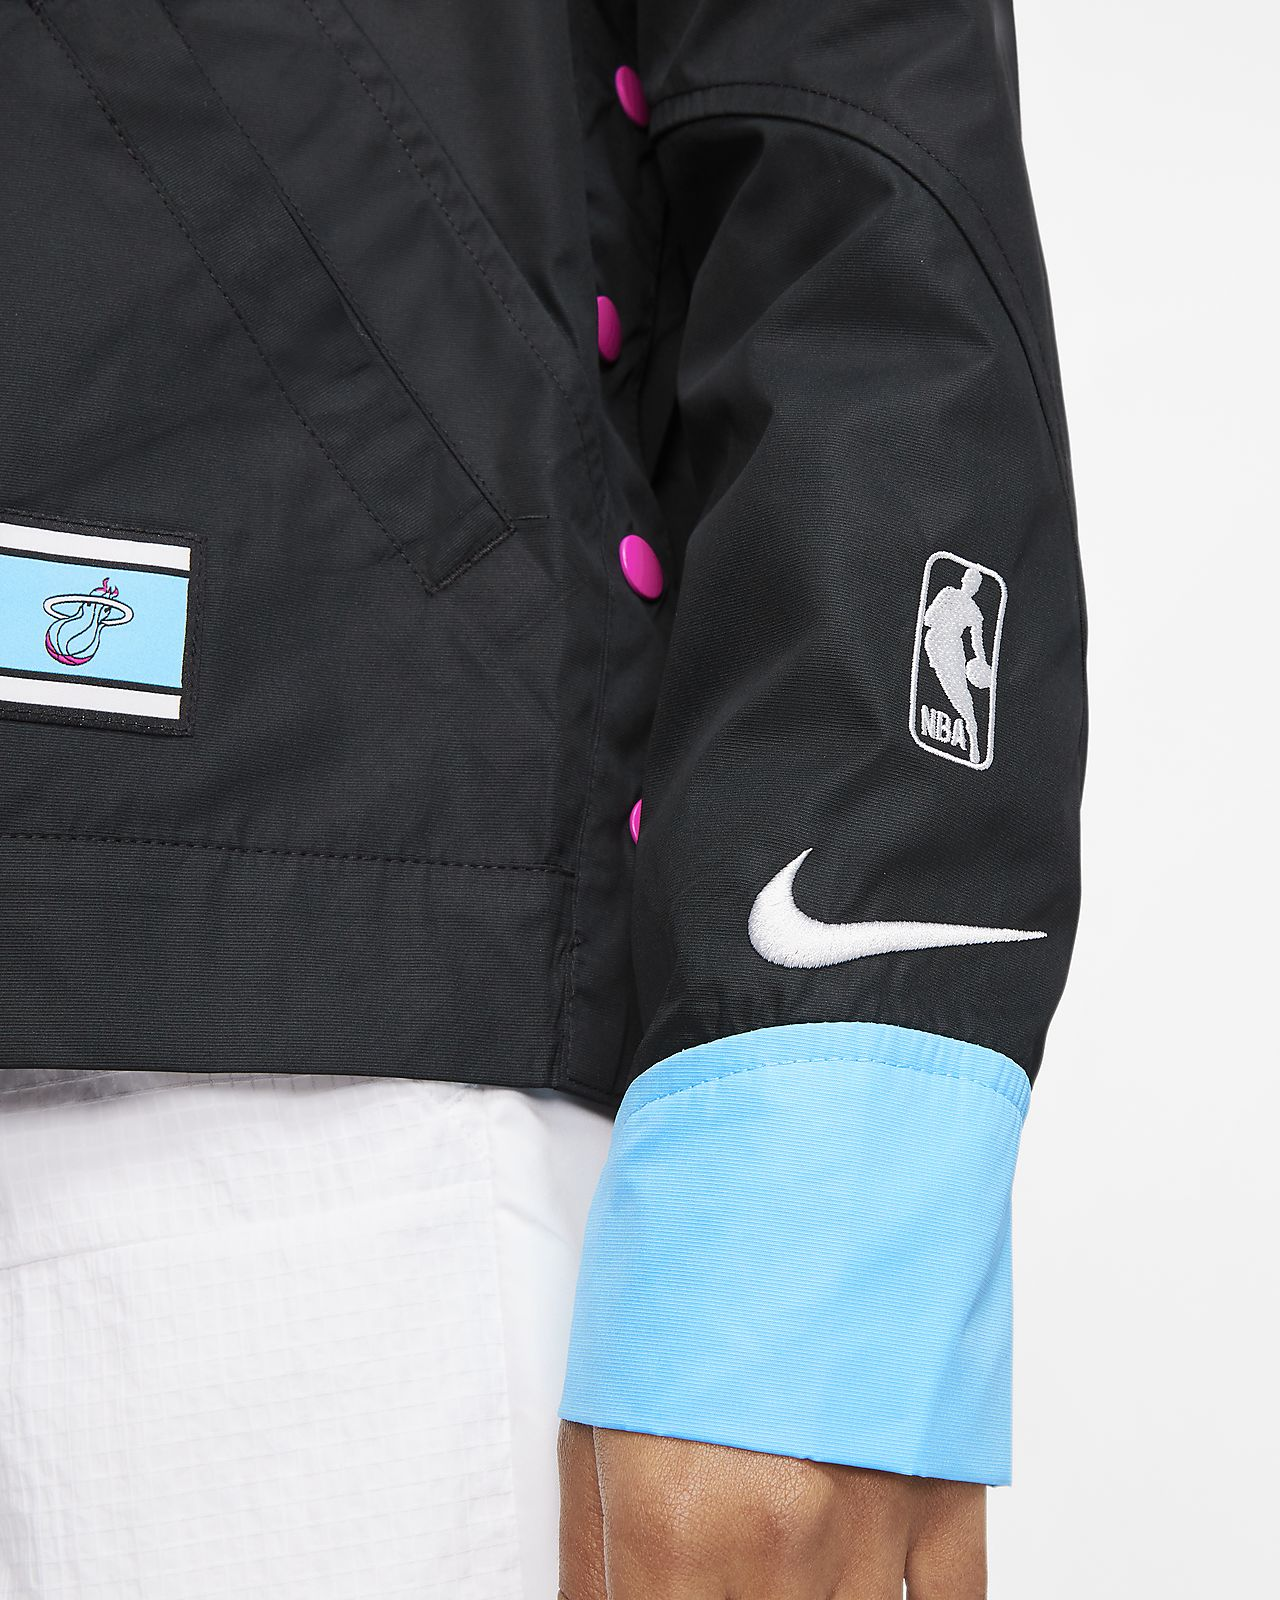 Veste à boutons pression Nike NBA Miami Heat Courtside City Edition pour Femme